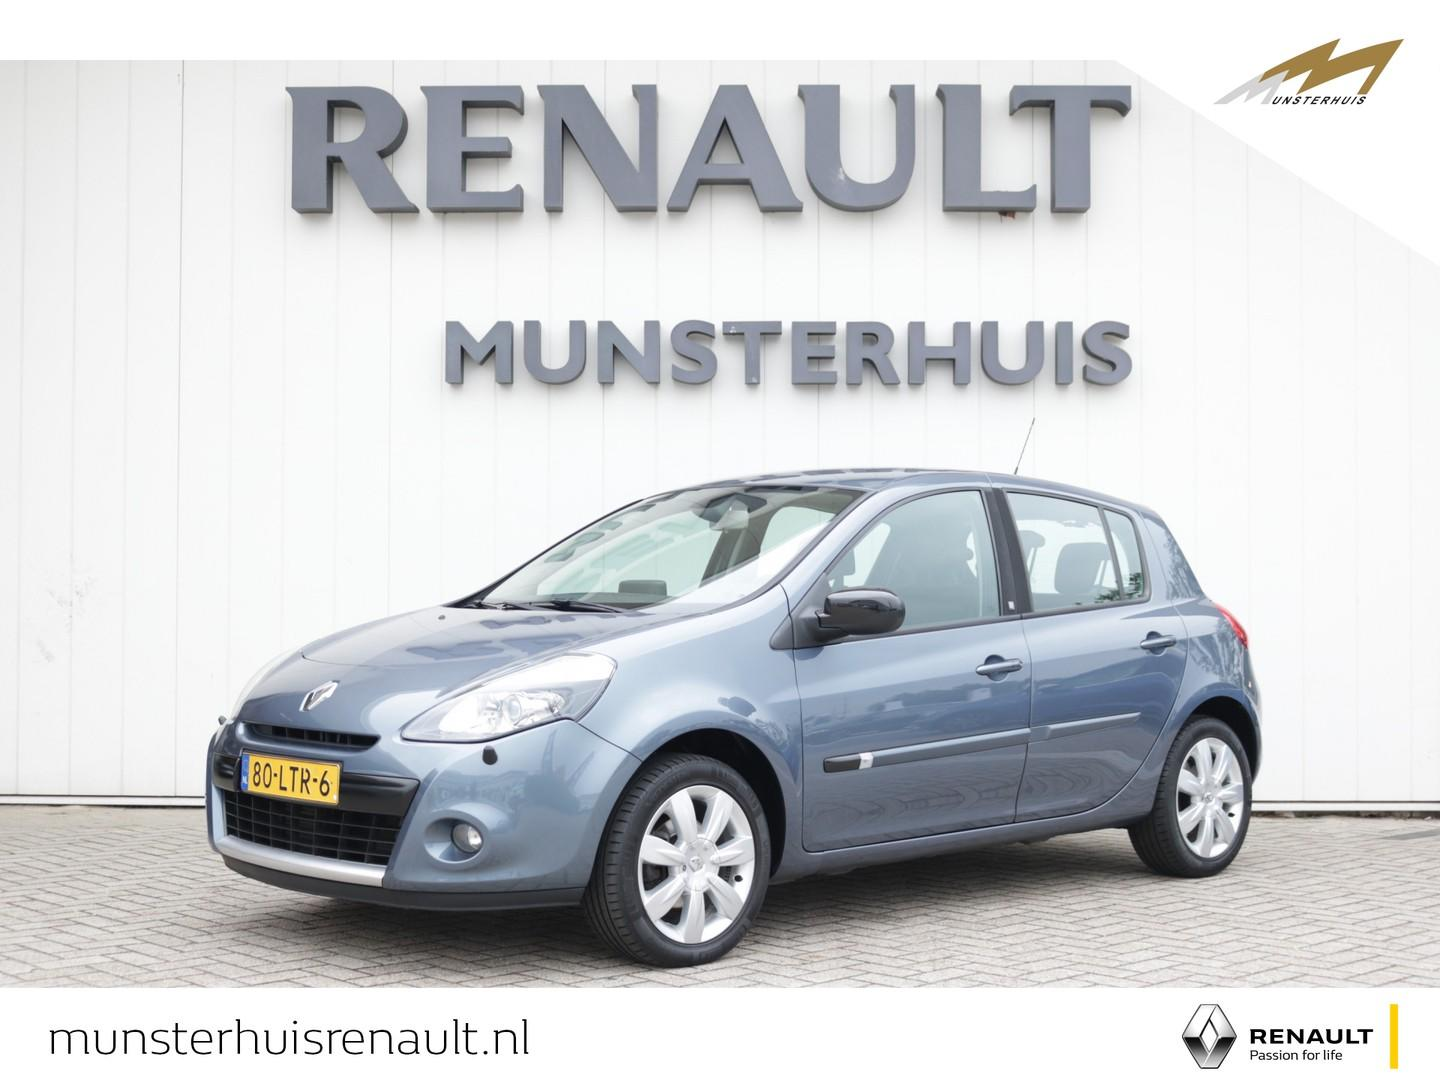 Renault Clio Tce 100 20th anniversary